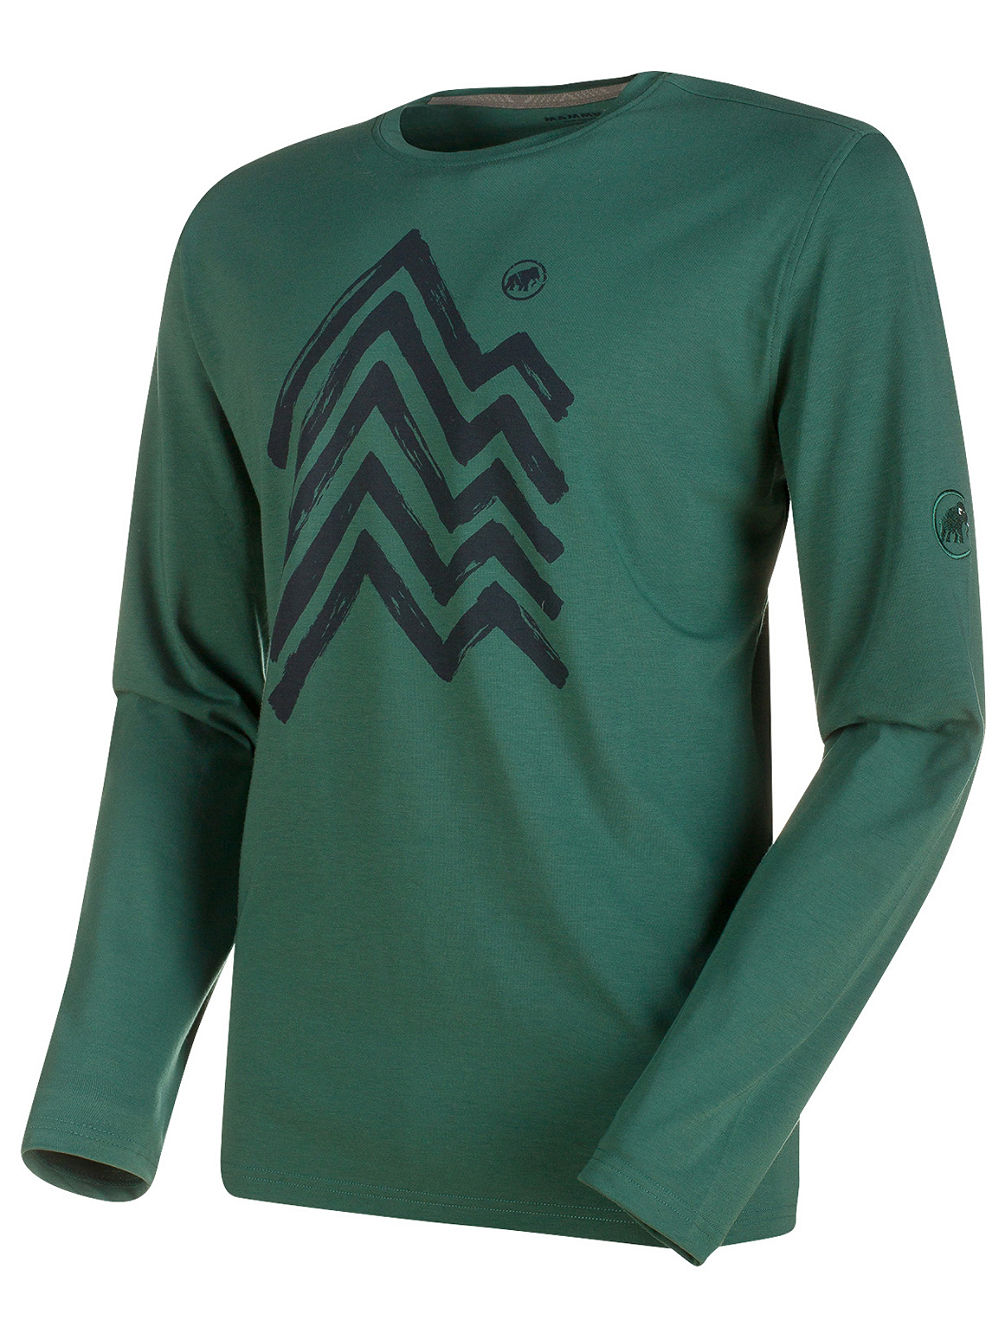 Buy Mammut Fedoz Tech Tee Ls Online At Blue Tomato Com